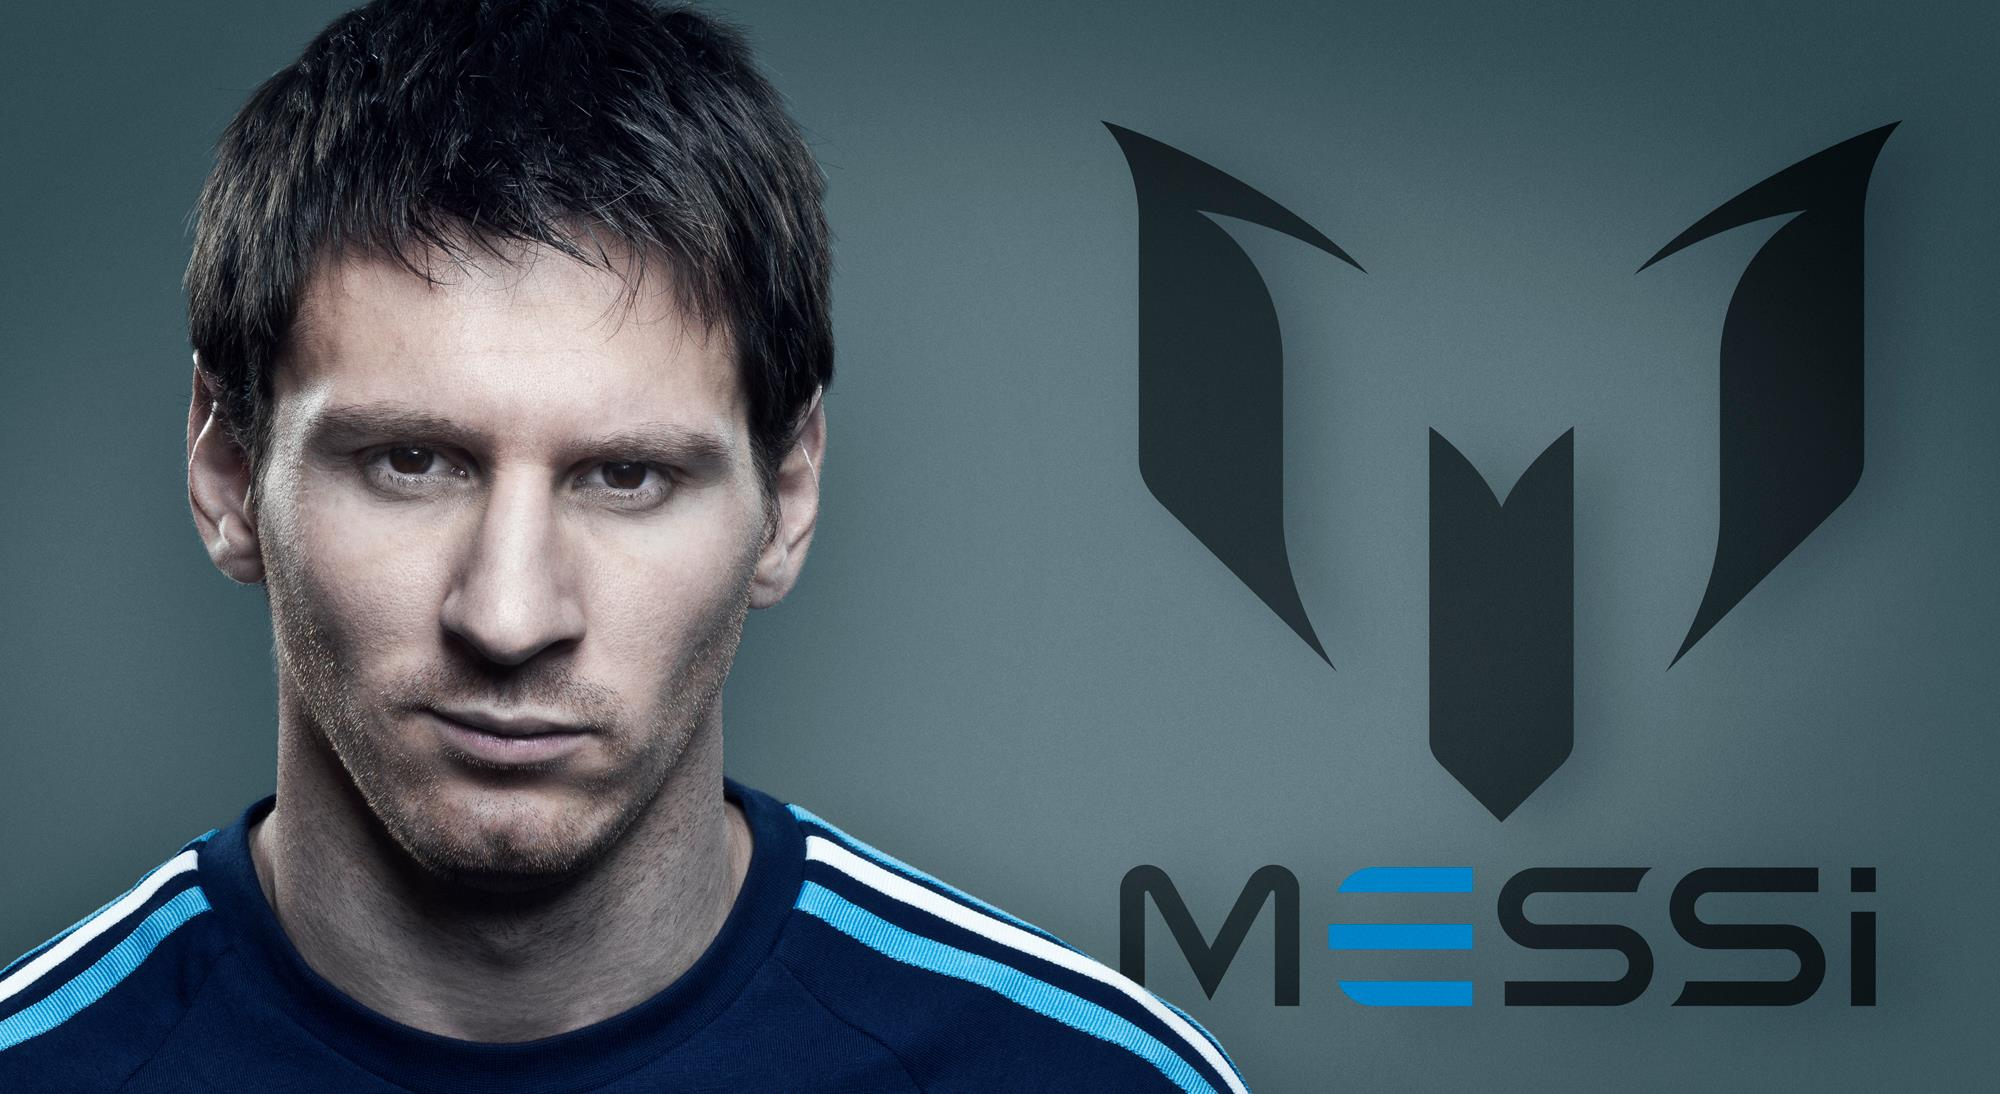 Messi HD Wallpapers 2014